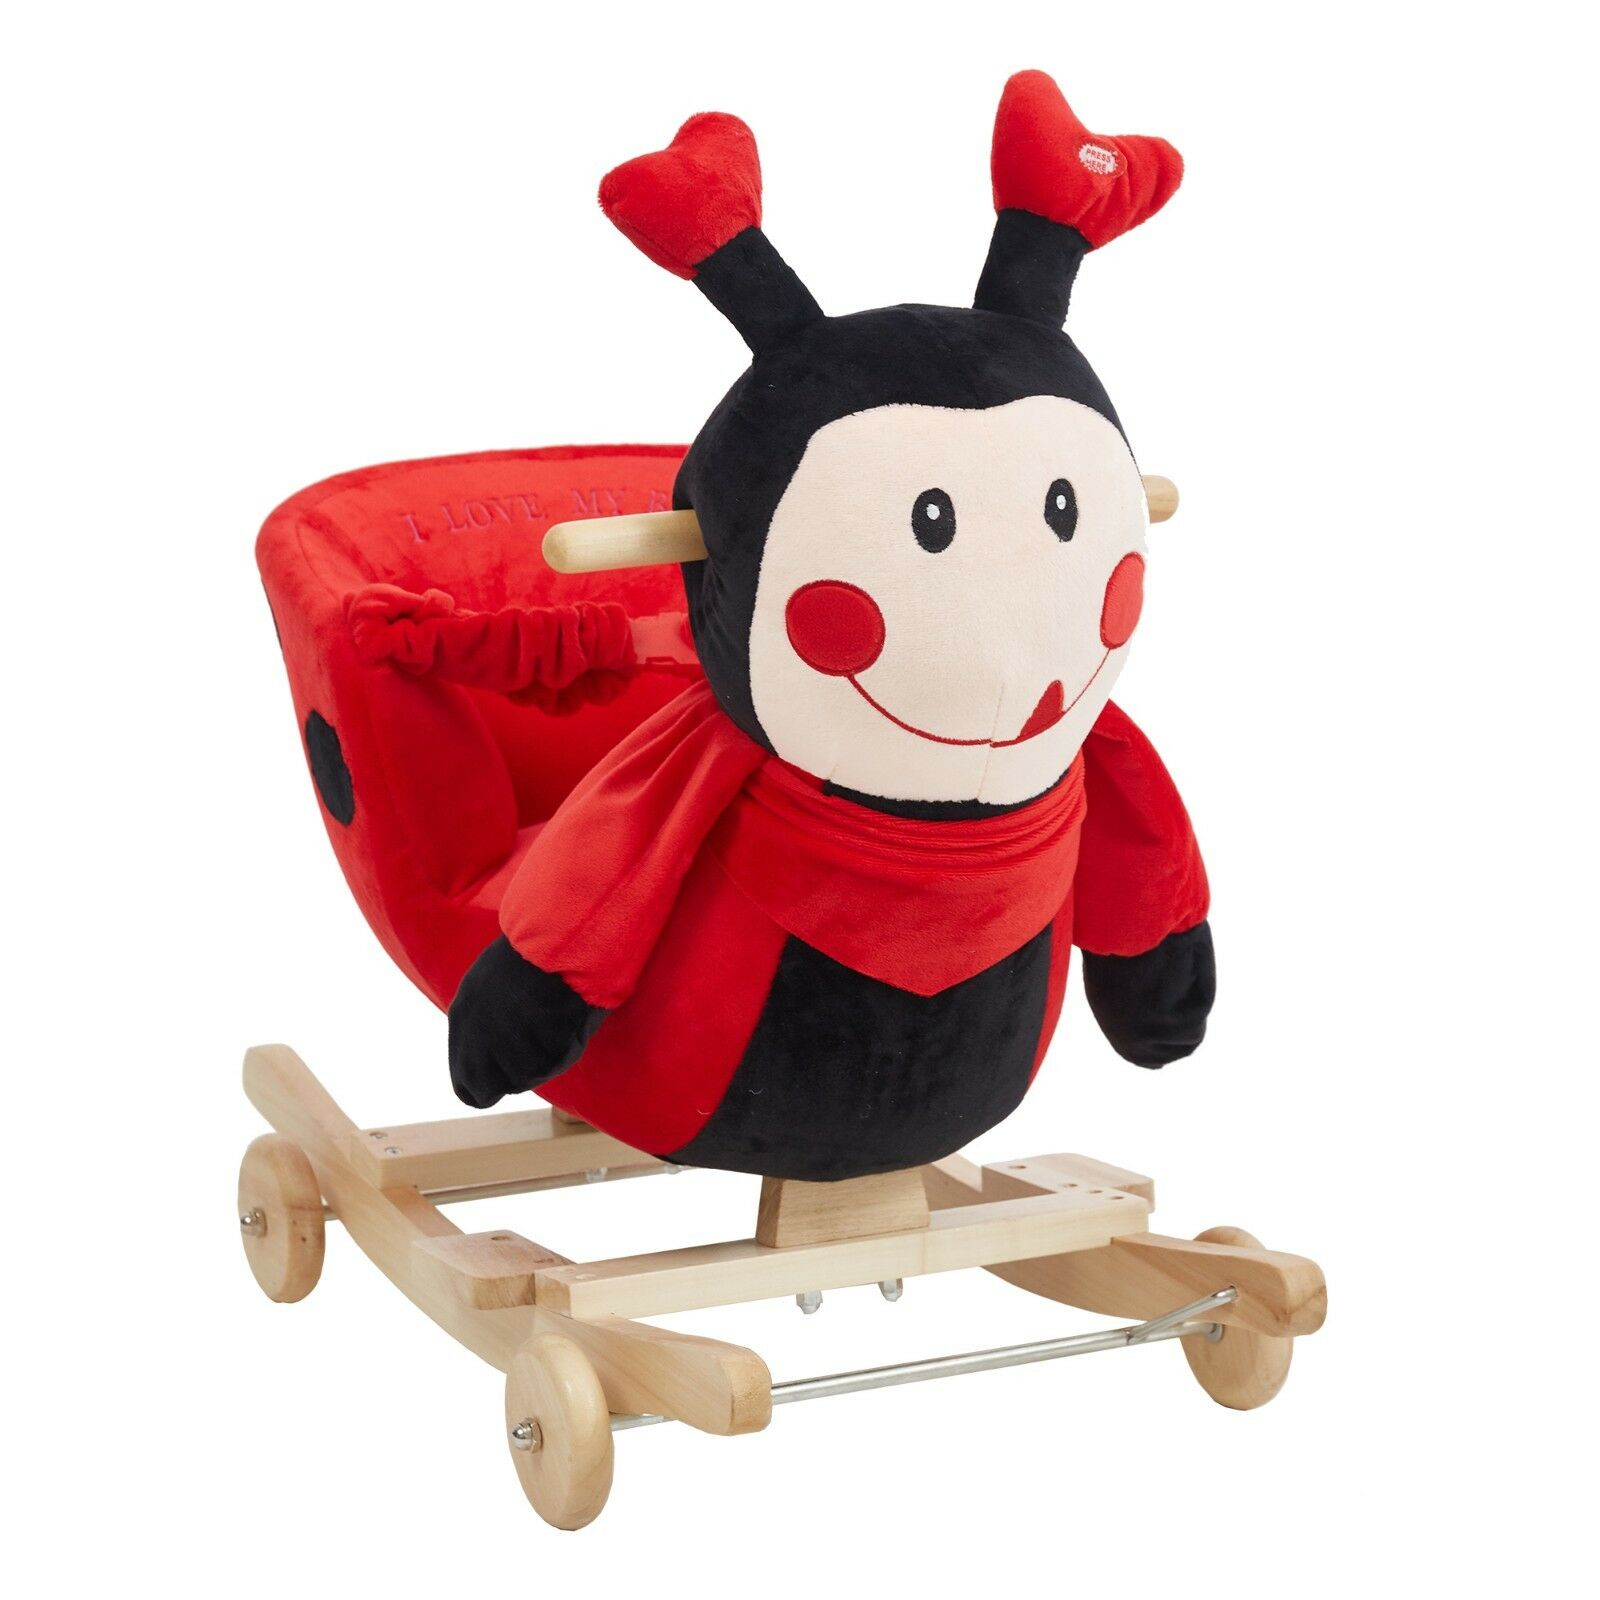 Details About Children Kids Rocking Horse Plush Red Ladybug Ride On Toy Seat Belt With Rhymes